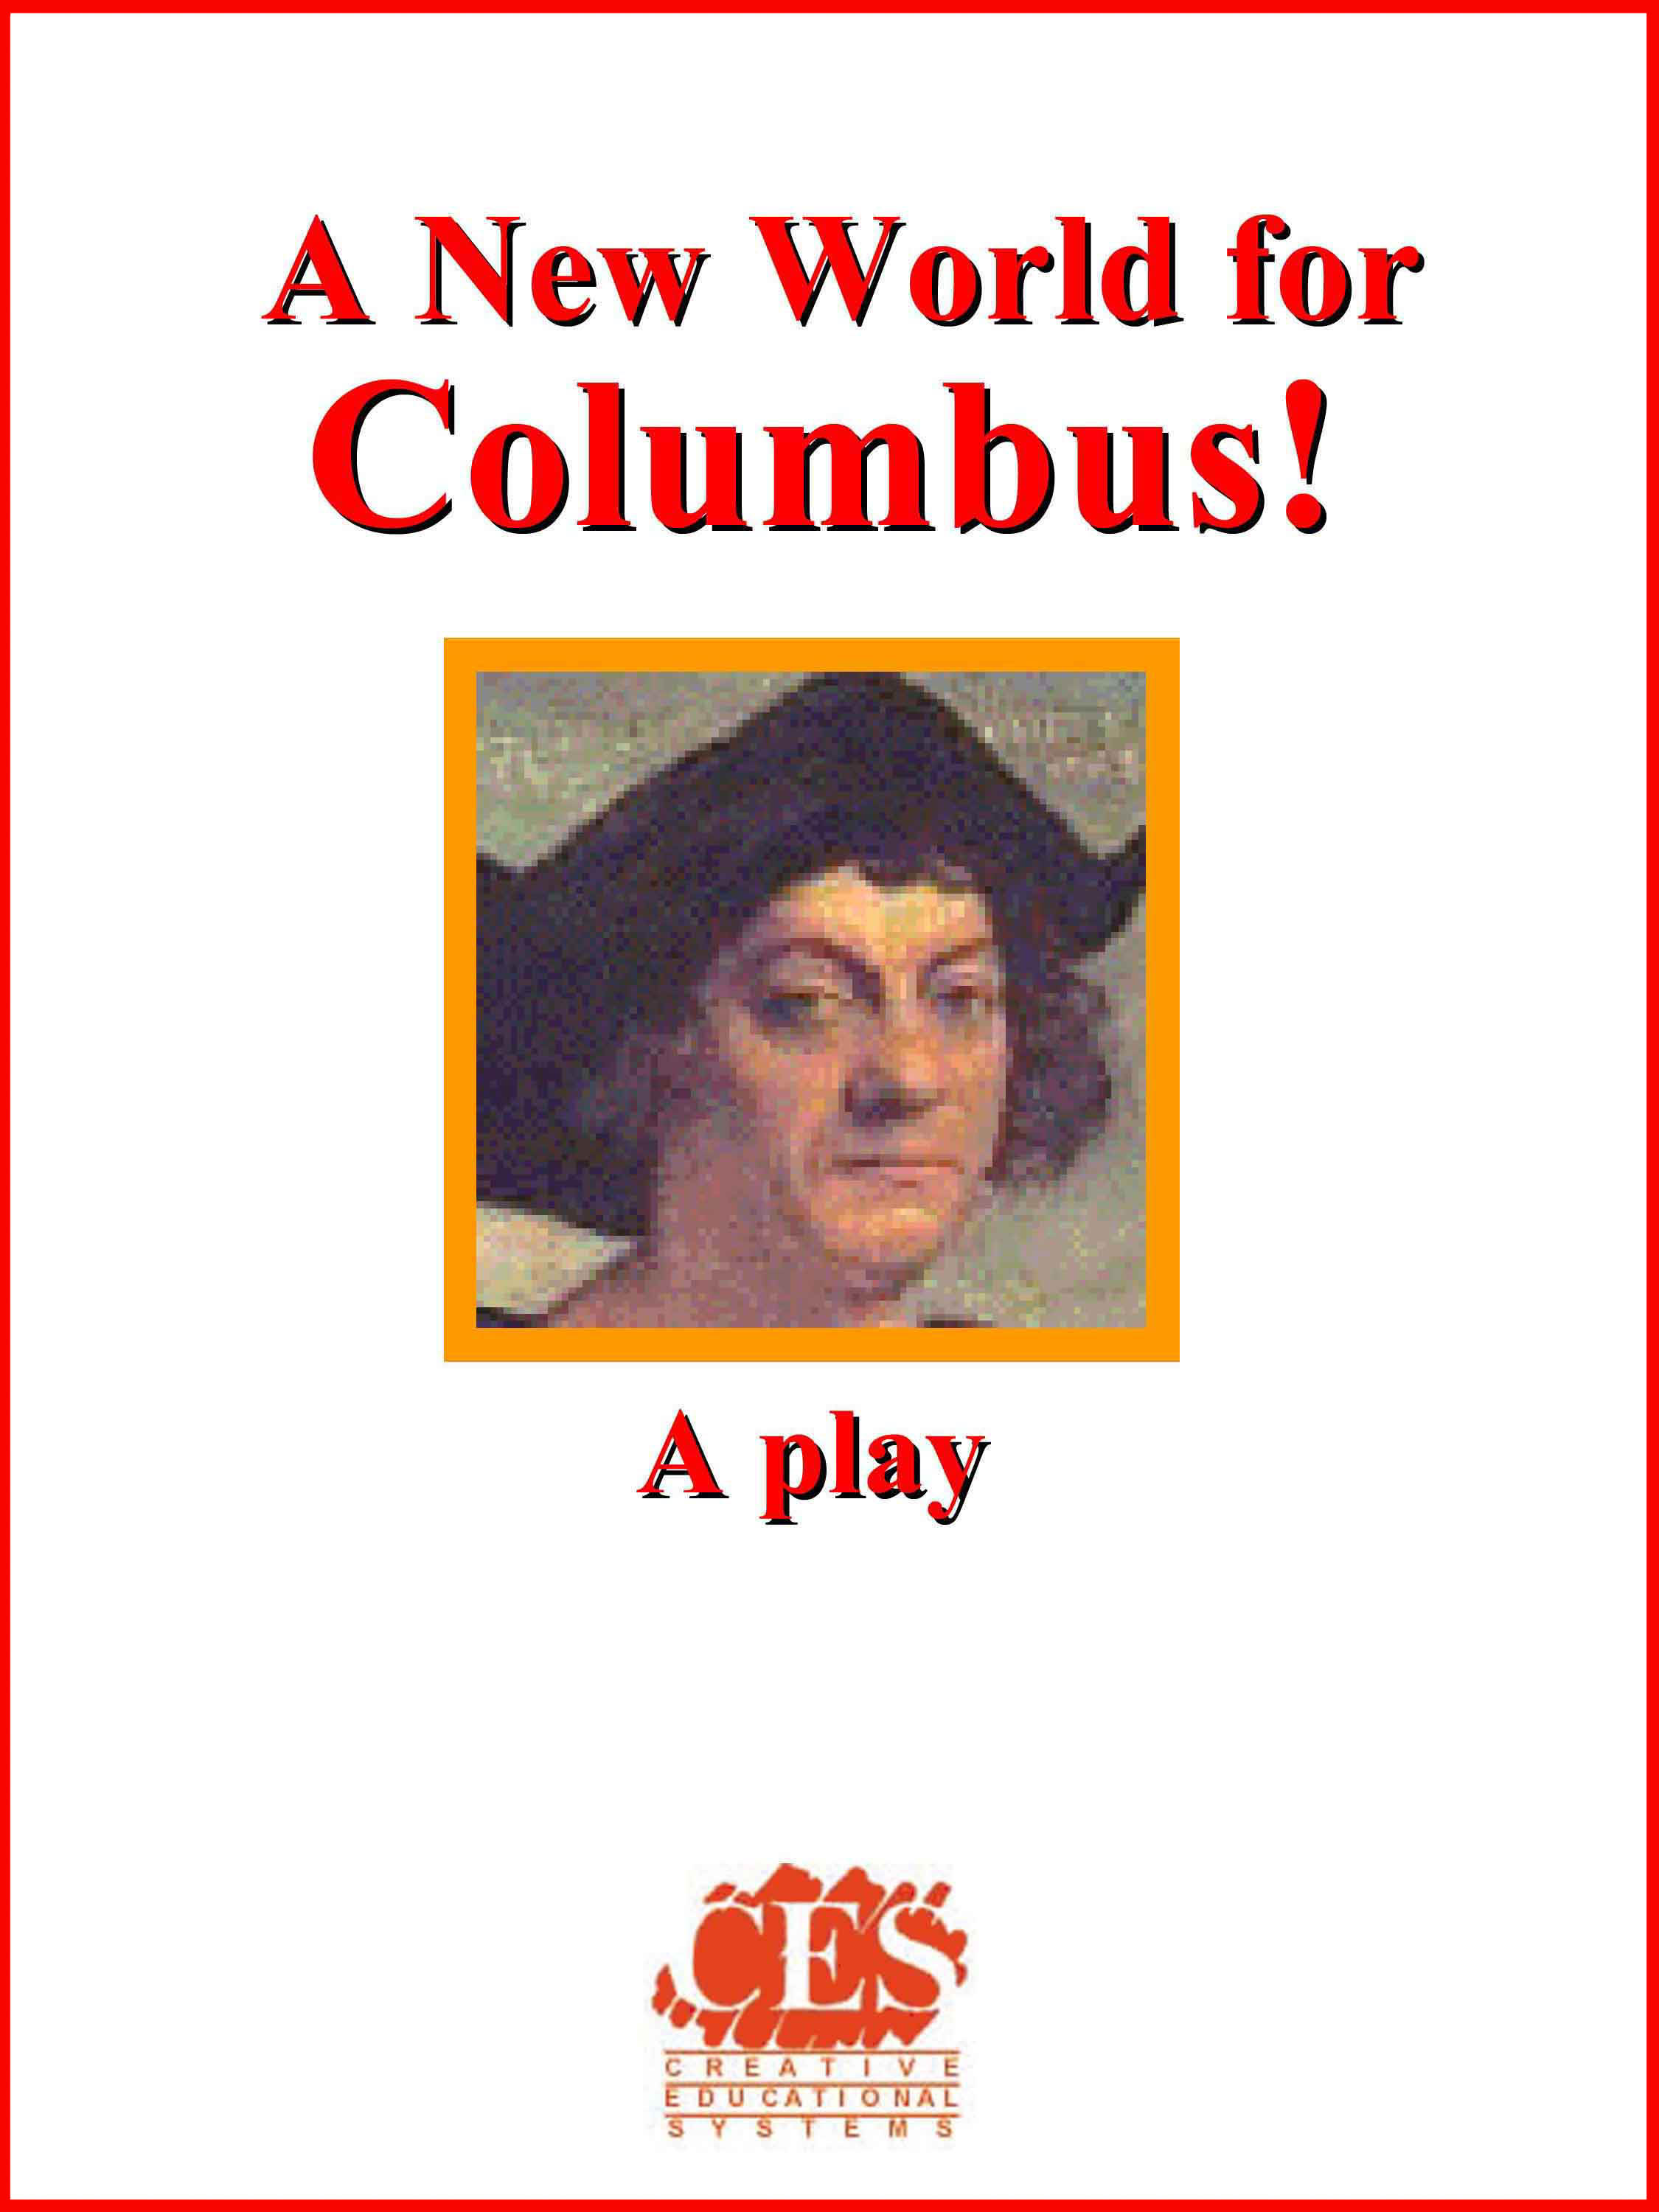 A New World for Columbus! multicultural approach Junior High School play script cover